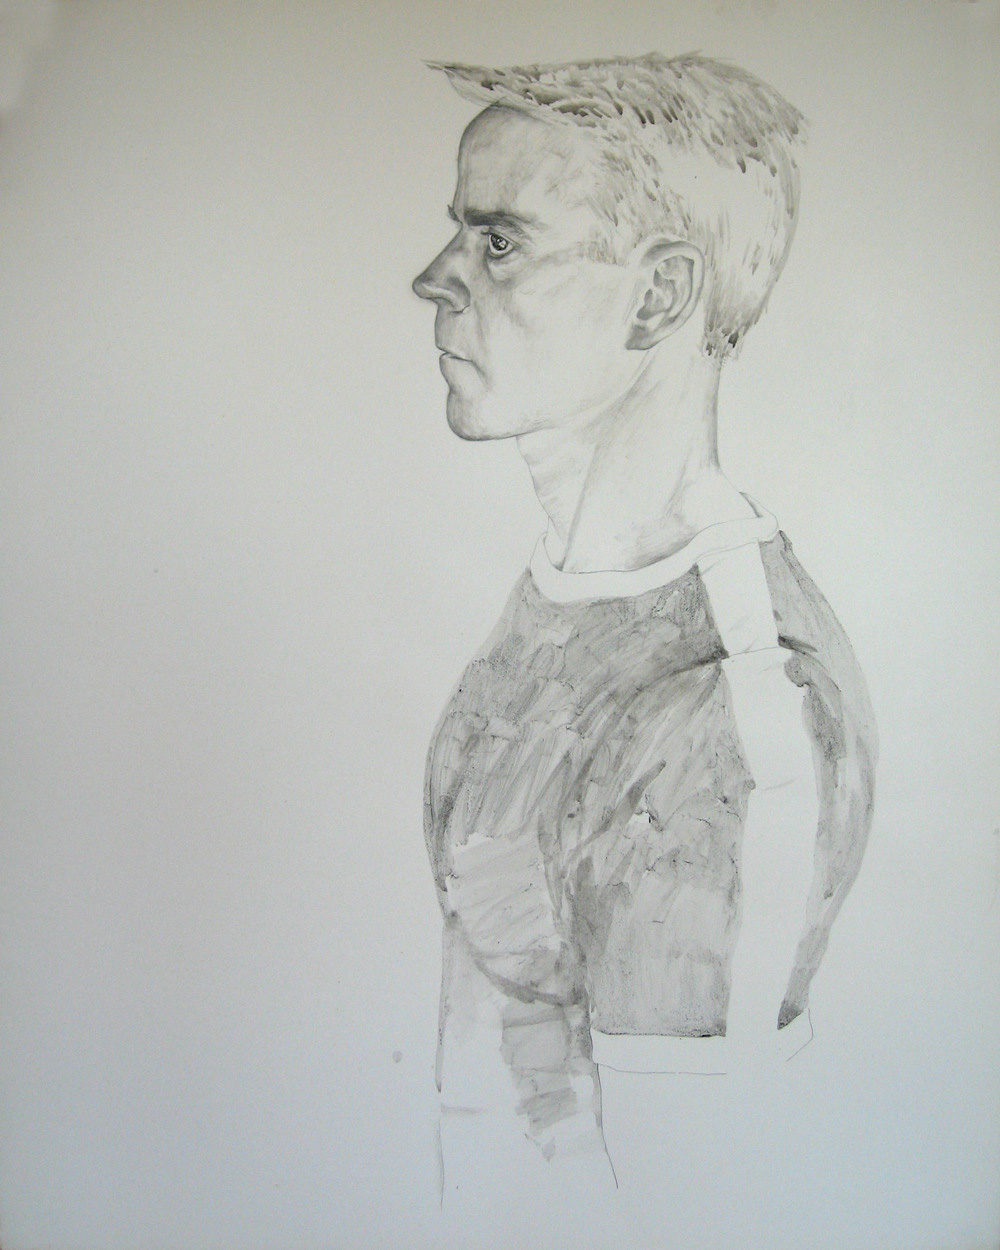 <em>Self-portrait</em>, 1976. Pencil and ink wash on paper. 24 x 19 in. Courtesy of the artist and Craig Krull Gallery, Santa Monica.